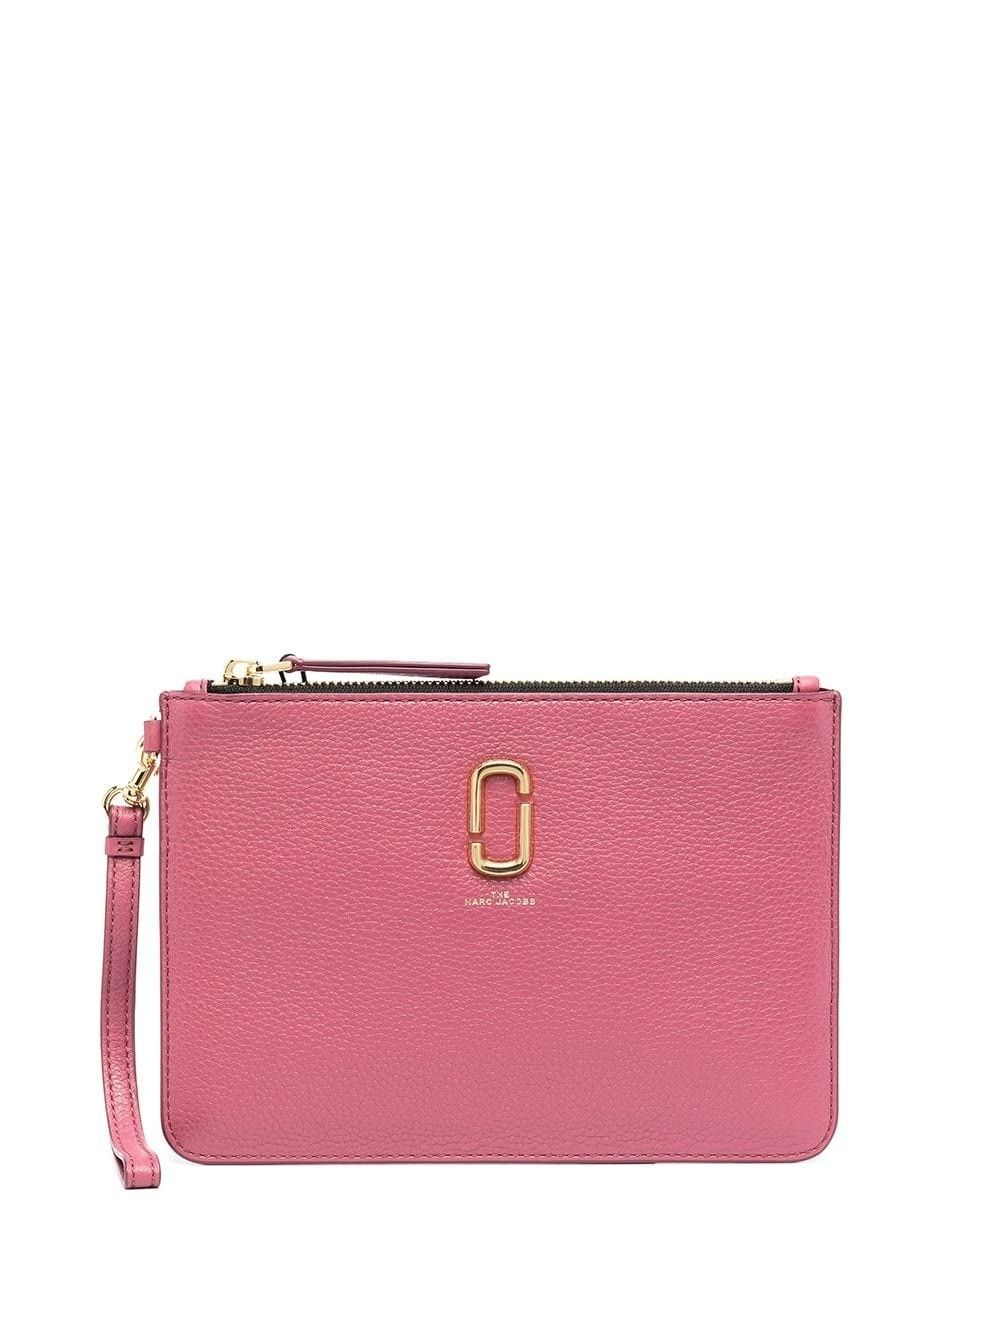 Marc Jacobs MARC JACOBS WOMEN'S M0017043514 PINK LEATHER POUCH